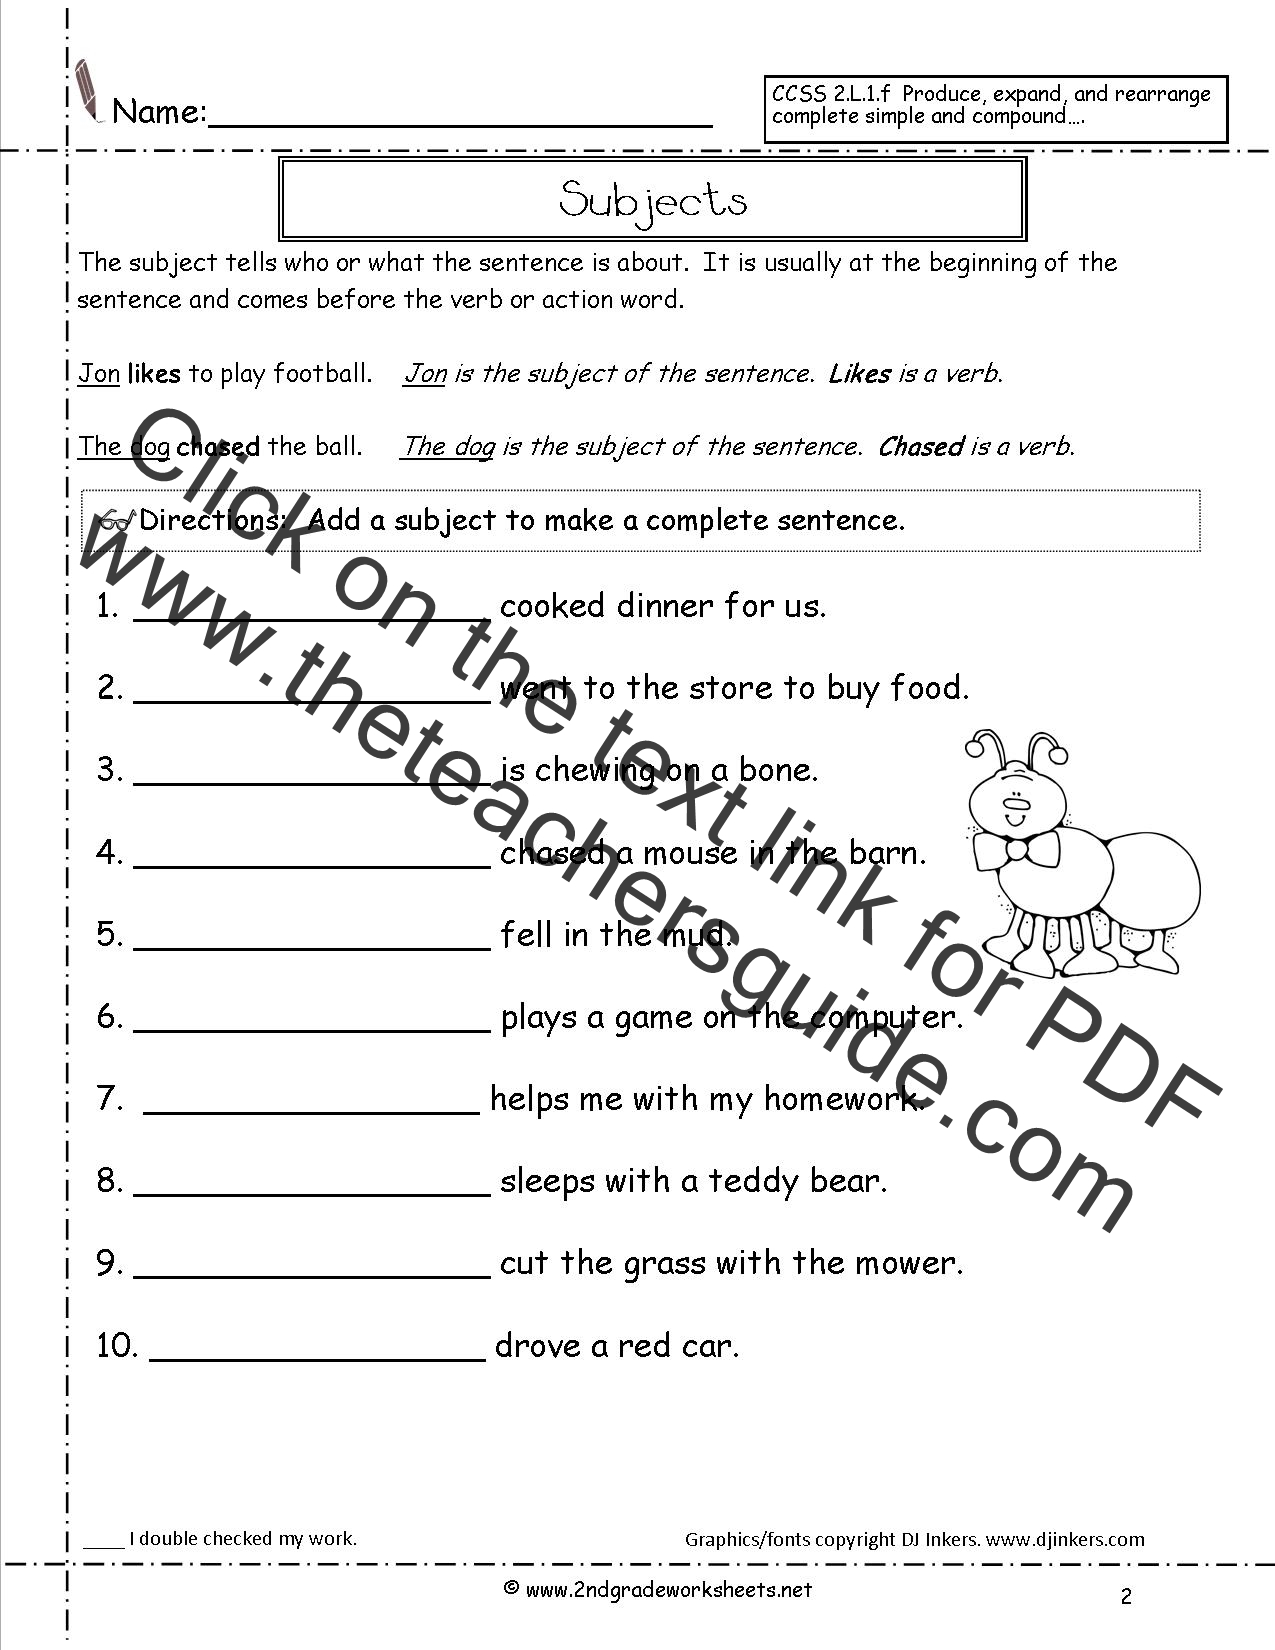 hight resolution of Declarative And Interrogative Sentences Worksheet 2nd Grade - Nidecmege